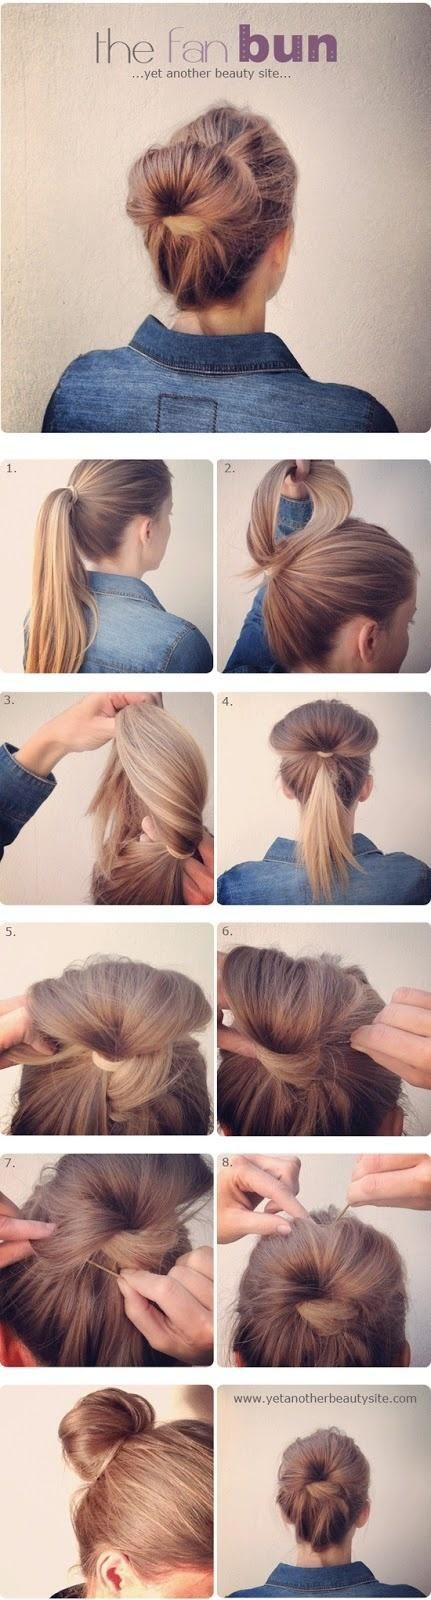 Love the website. Lots of different DIY hair styles.